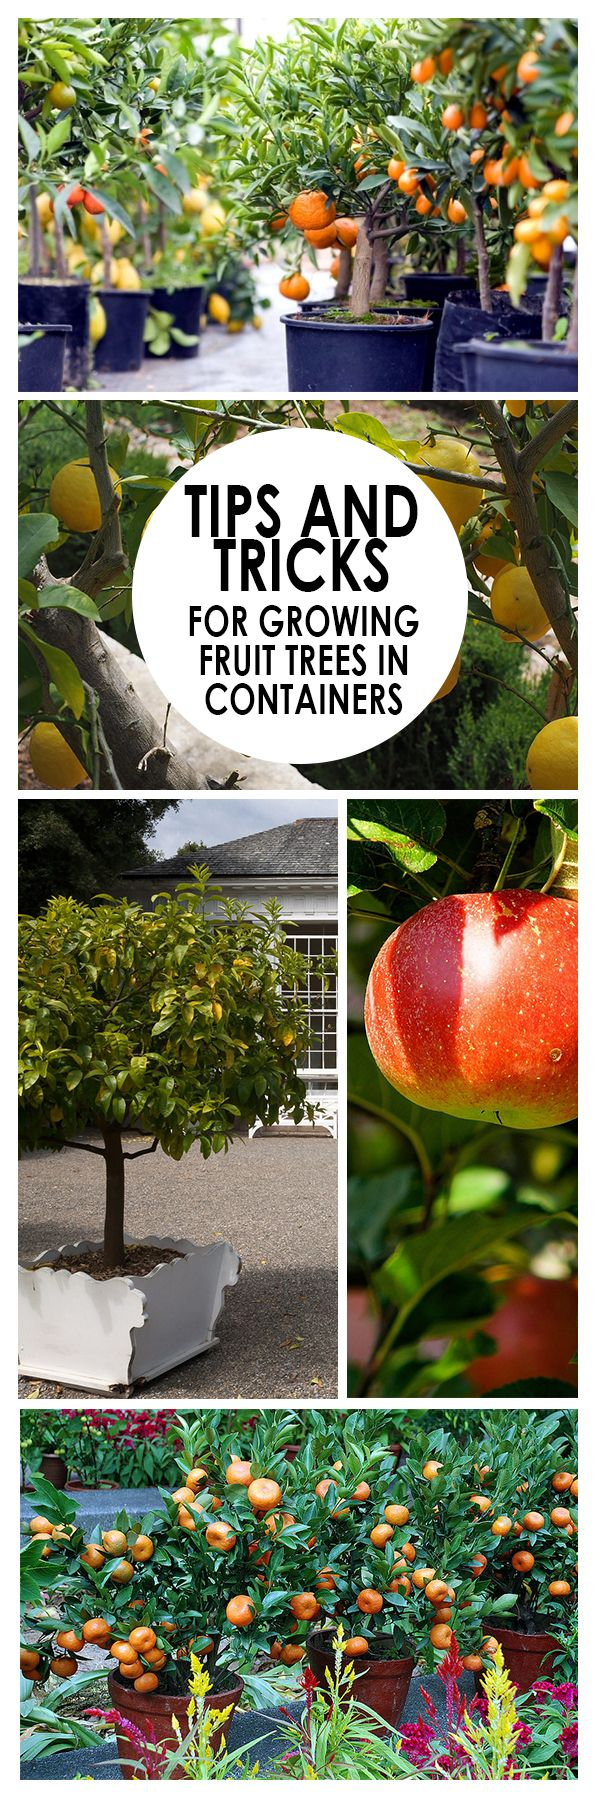 Tips and tricks for growing fruit trees in containers for Cultivo de arboles frutales en macetas